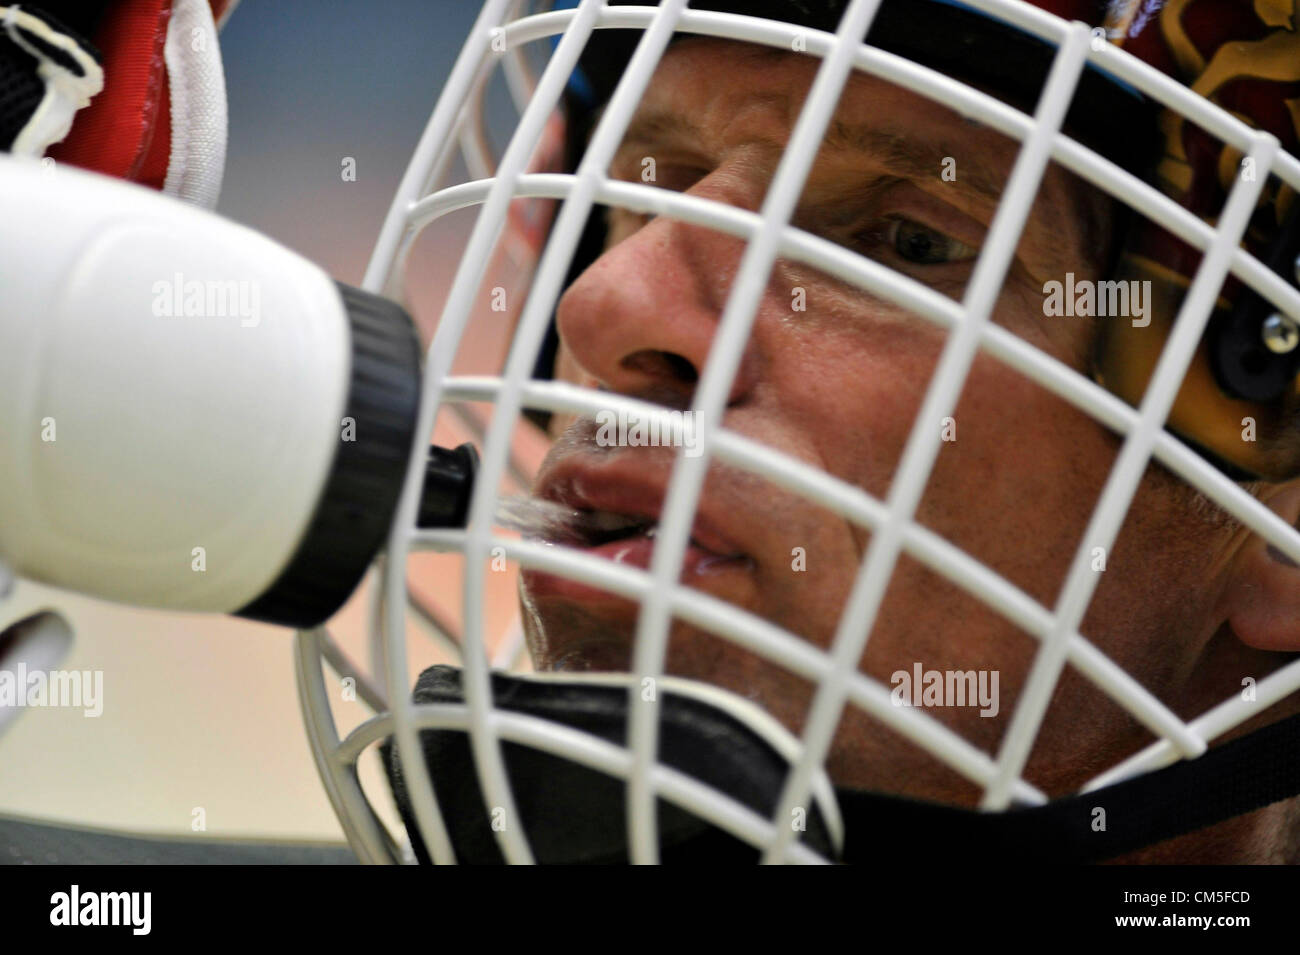 FILE - In this July 21, 2010 file photo, Czech ice hockey goalie Dominik Hasek is seen during KHL as a new goalie - Stock Image